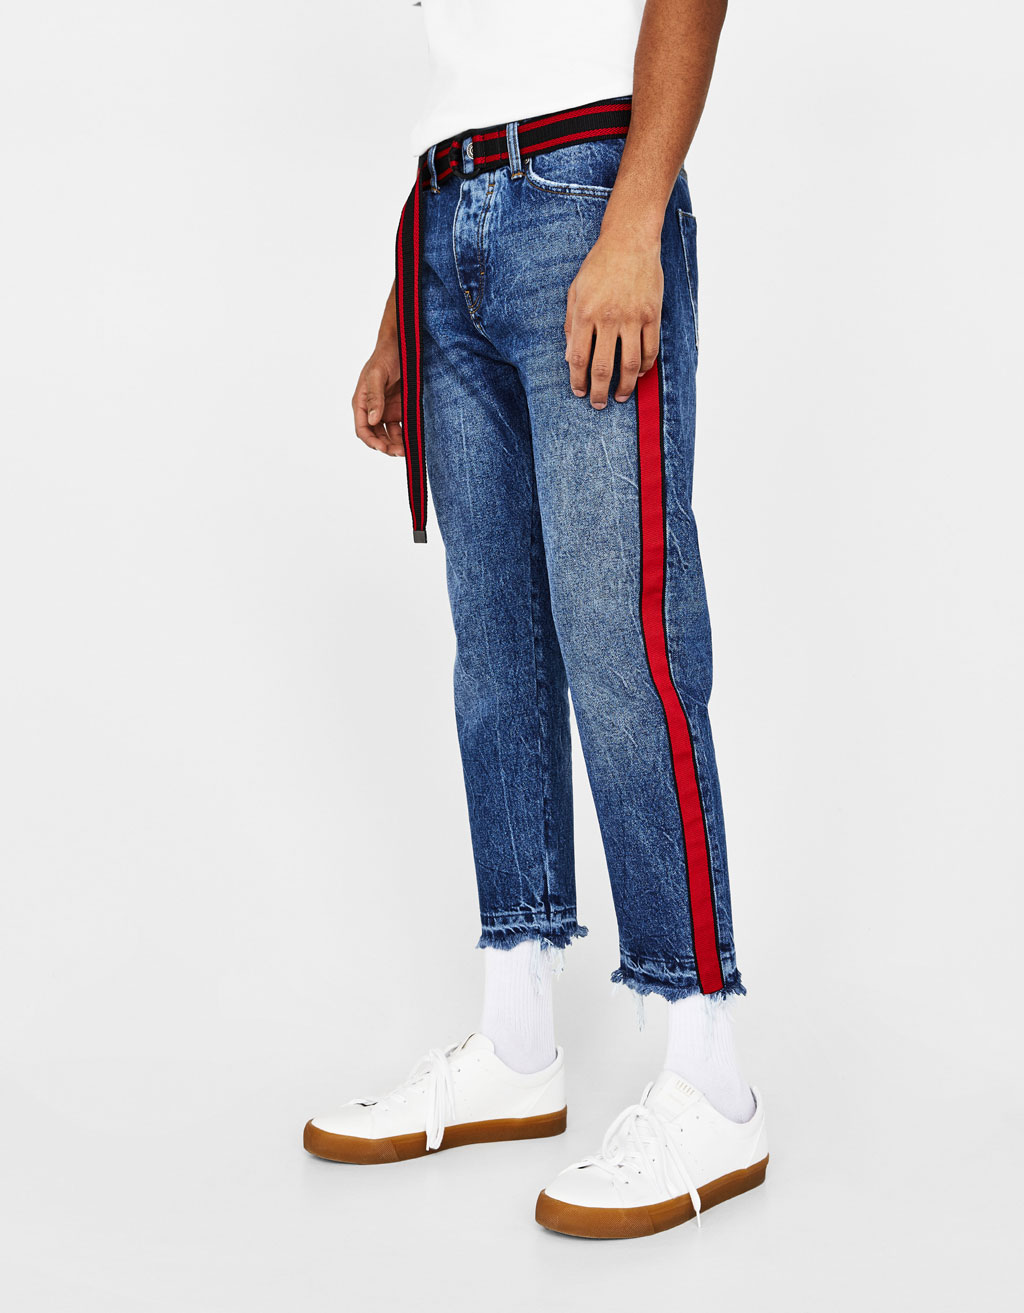 Cropped Slim Fit jeans with side stripes